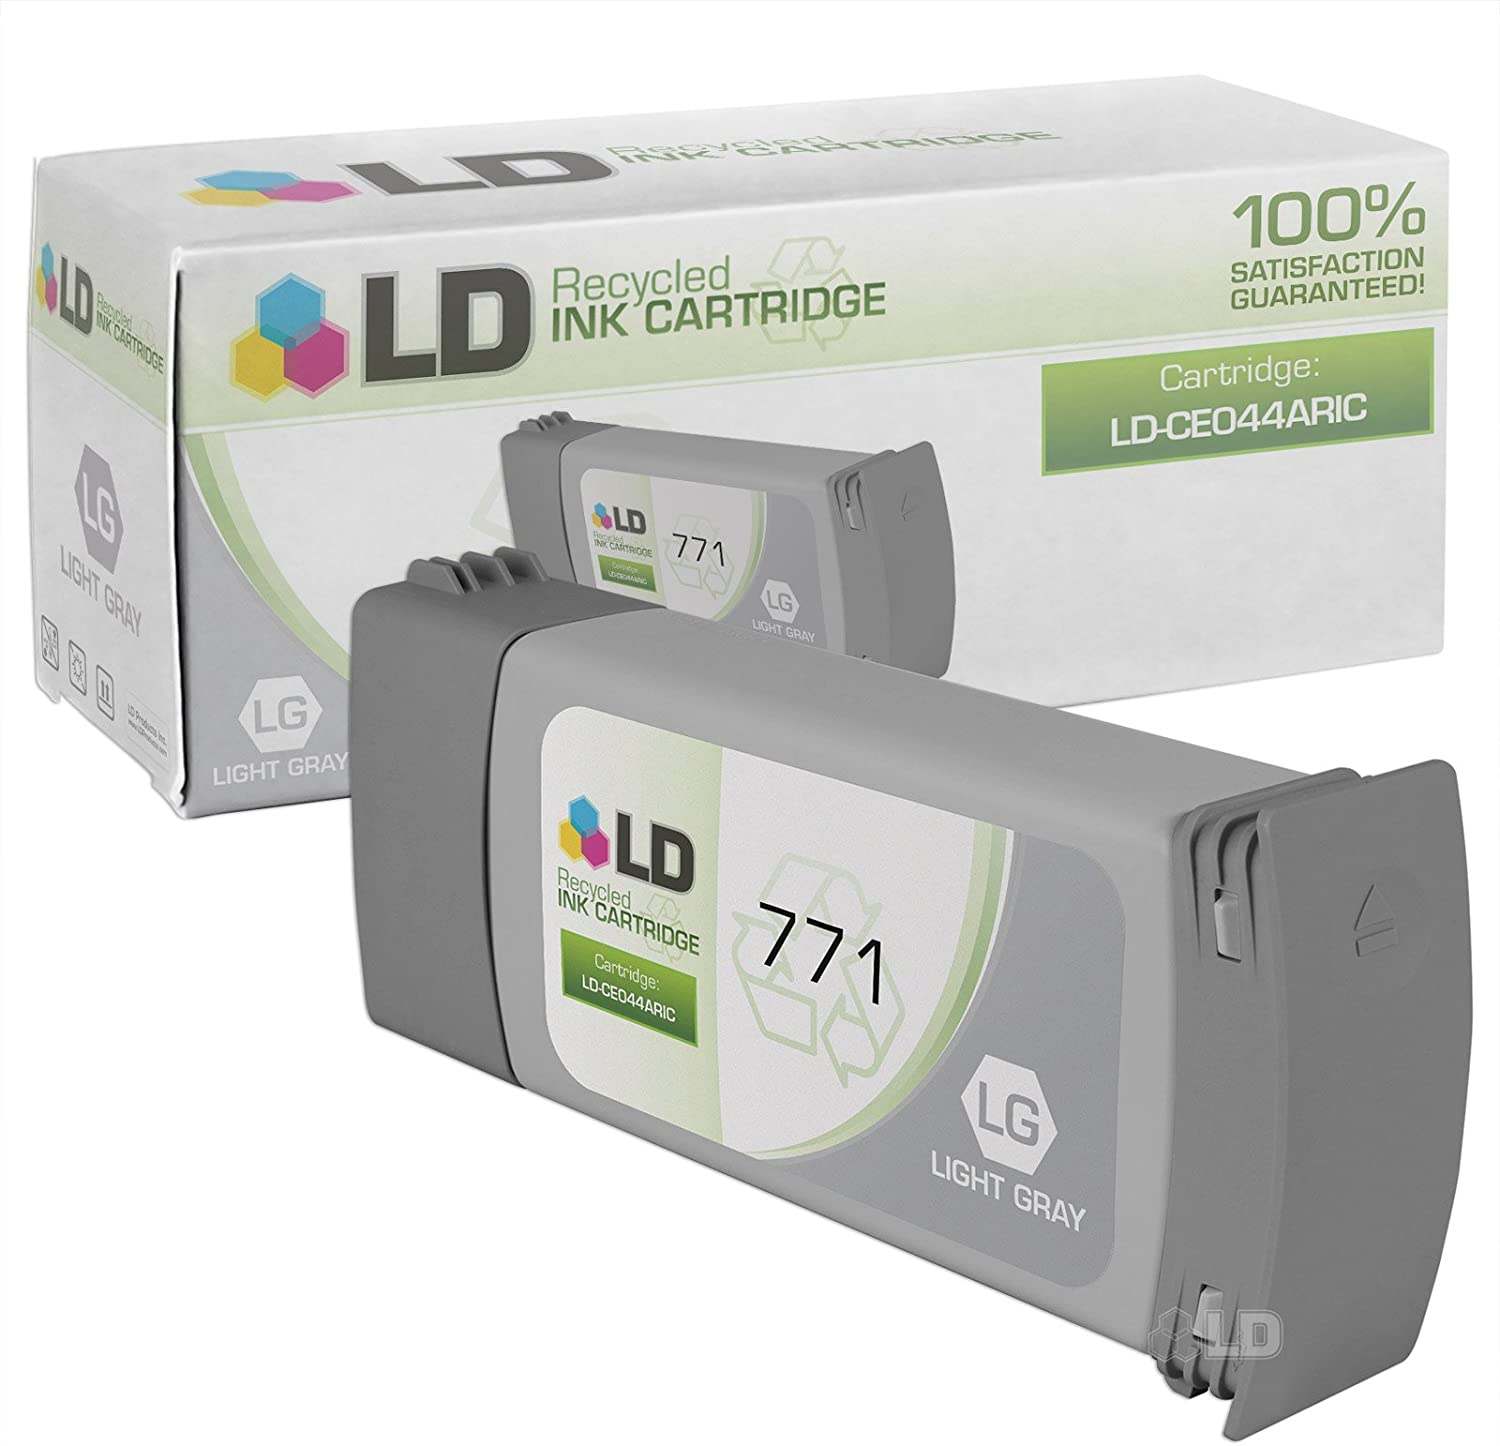 LD Remanufactured Ink Cartridge Replacement for HP 771 CE044A (Light Gray)